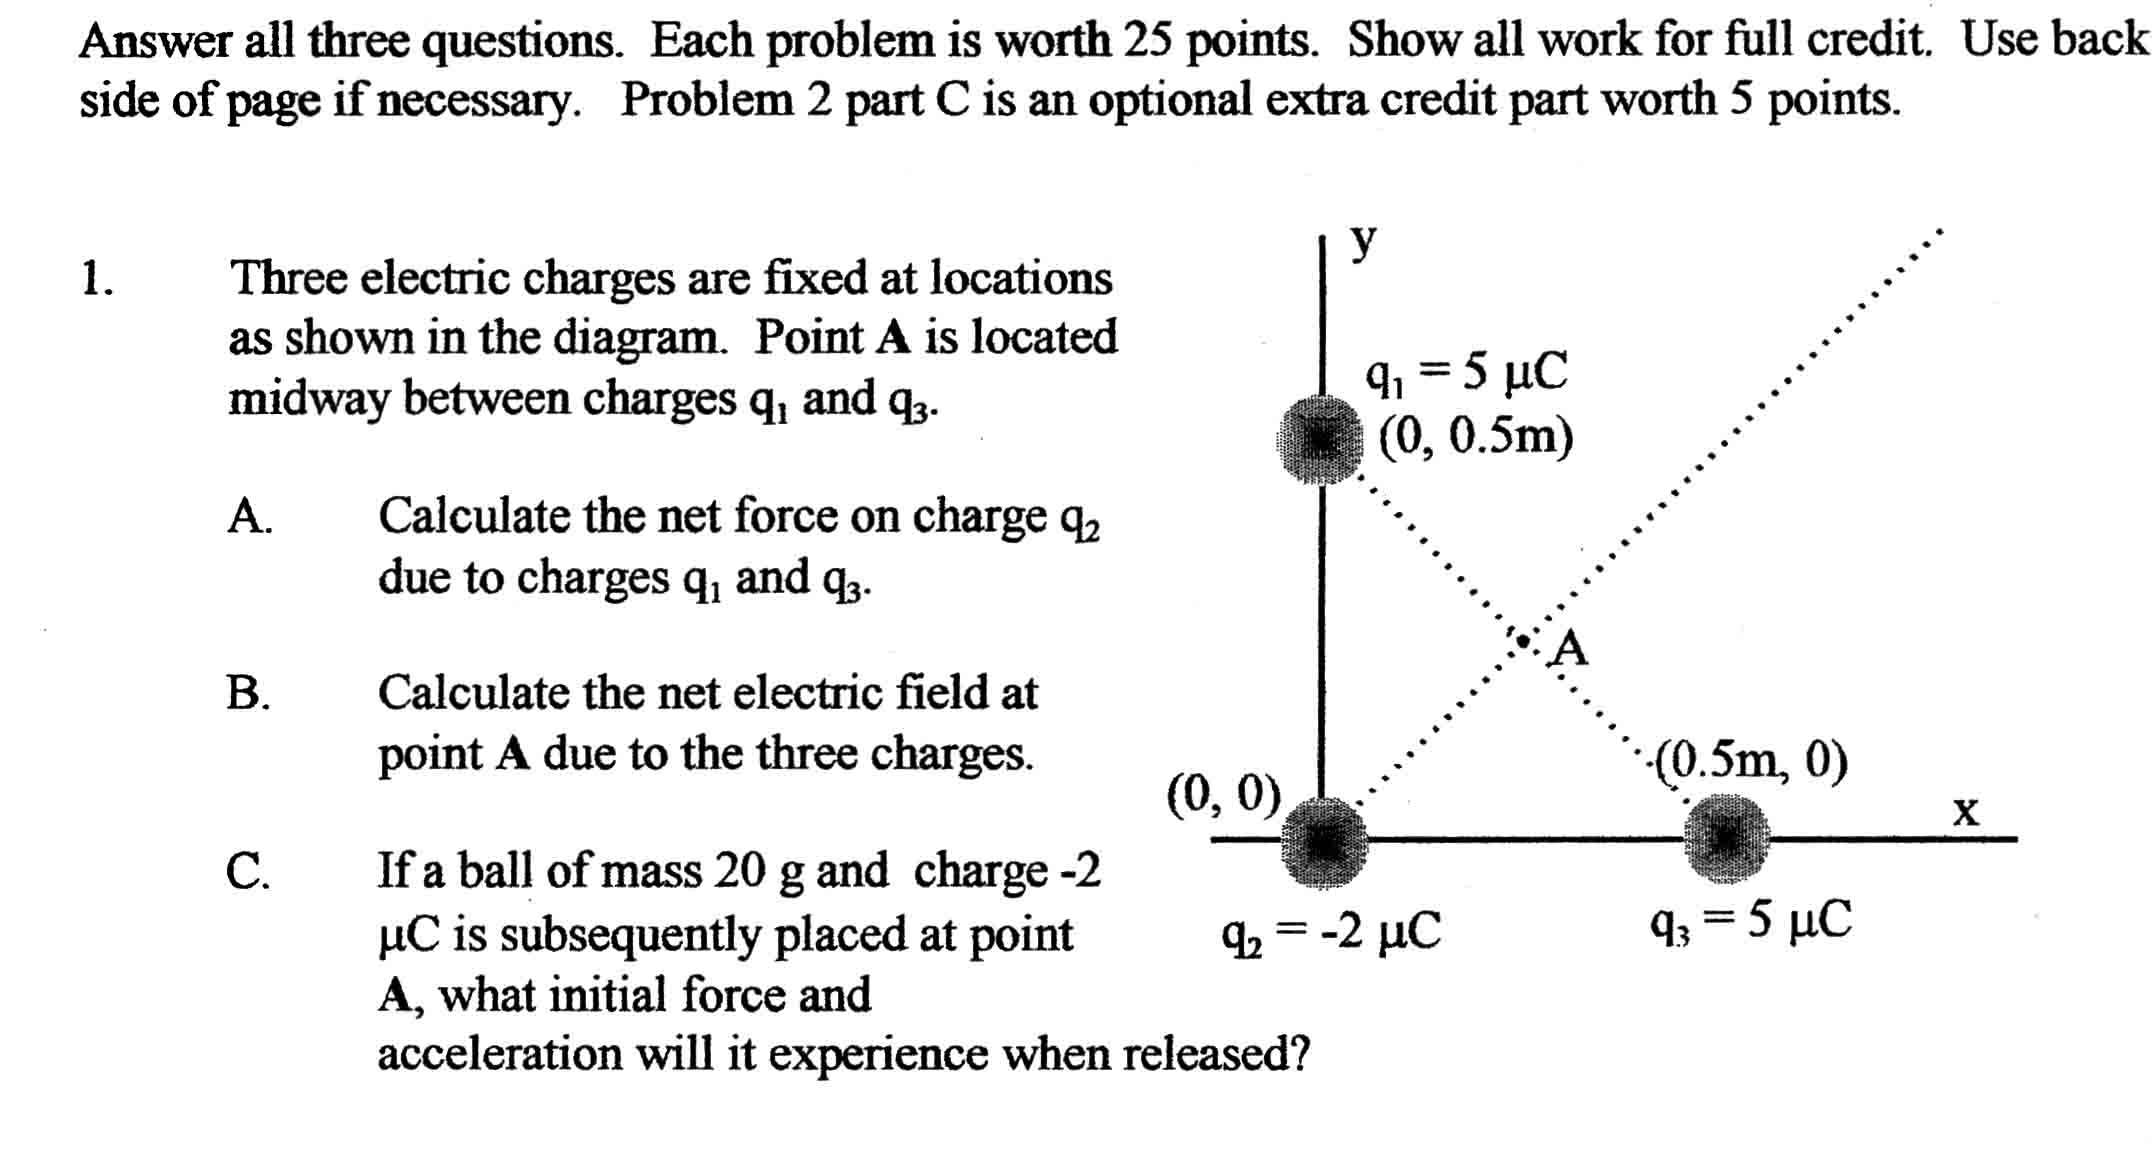 Calculate Net Force On Charge And Net Electric Field